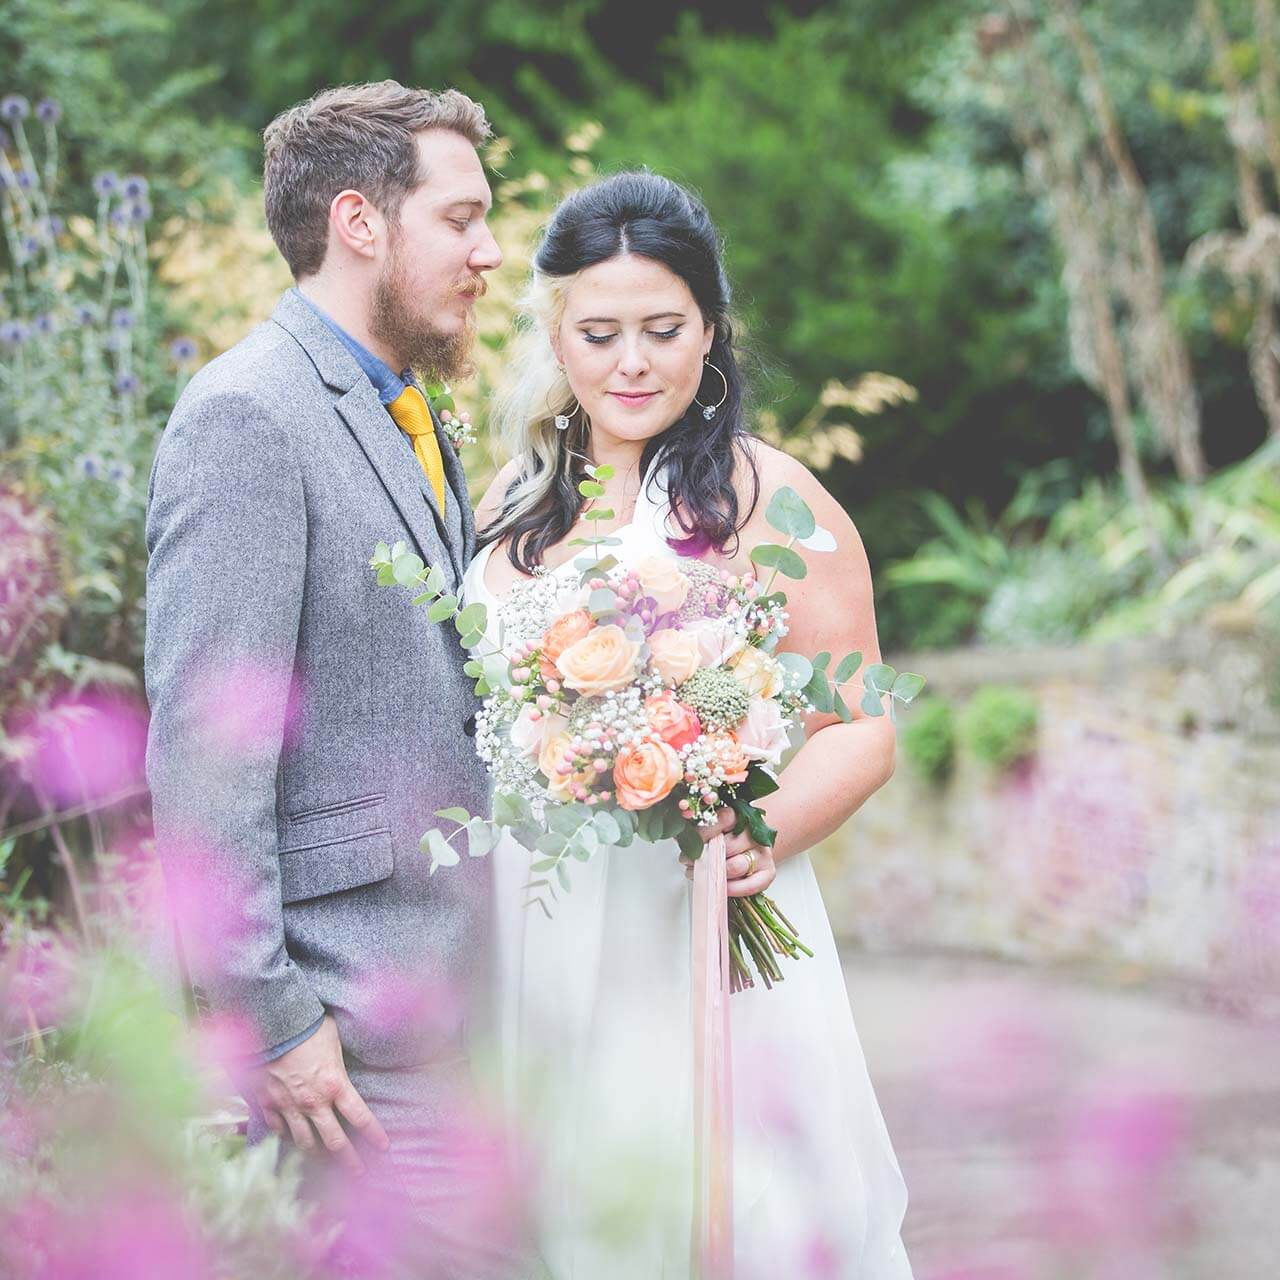 Industrial Wedding Photographer London | Philippa Sian Photography